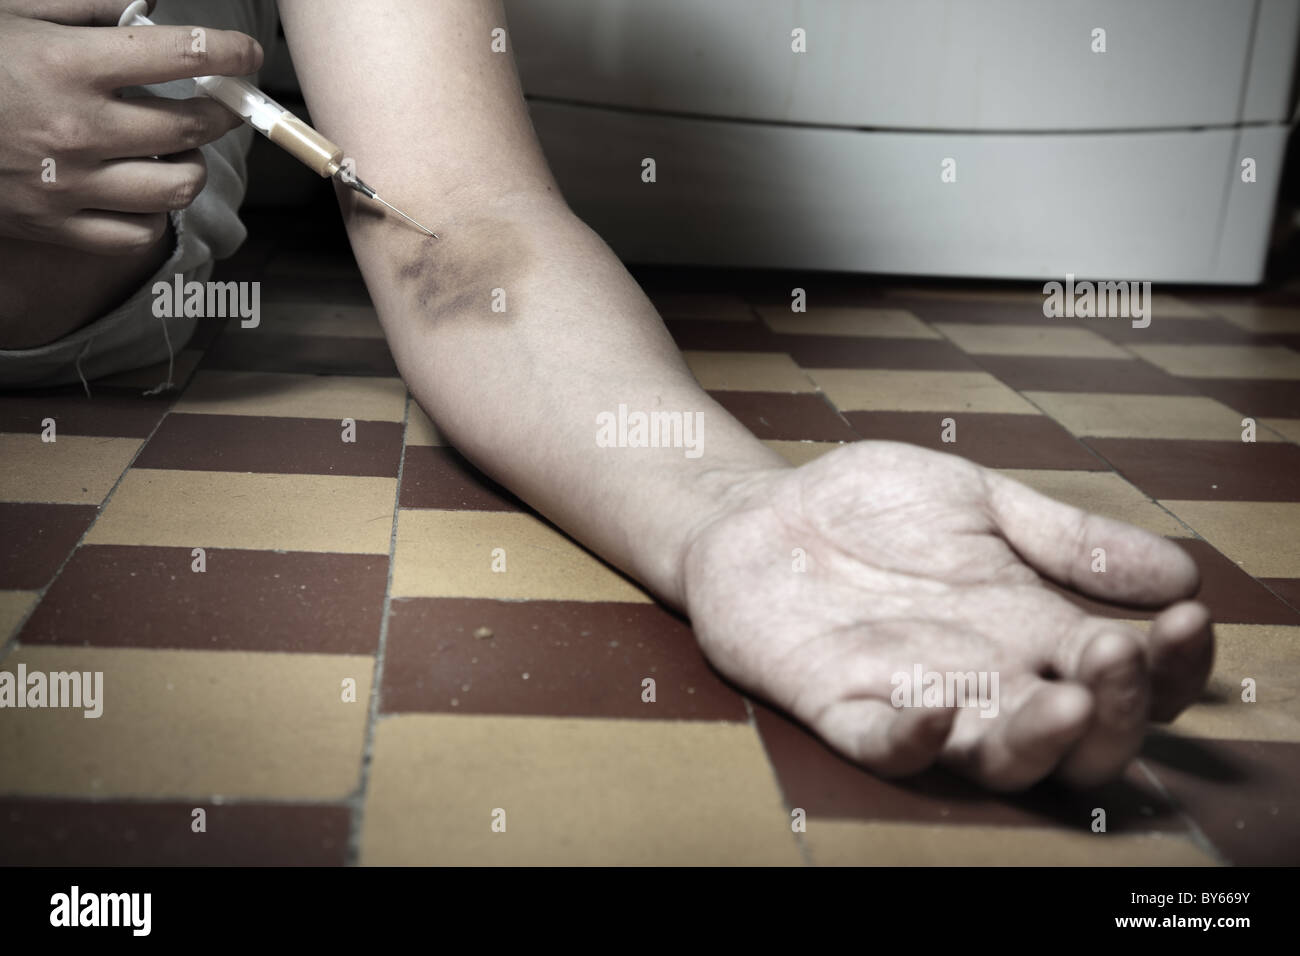 Hand with narcotic syringe on the floor. Artistic colors added - Stock Image